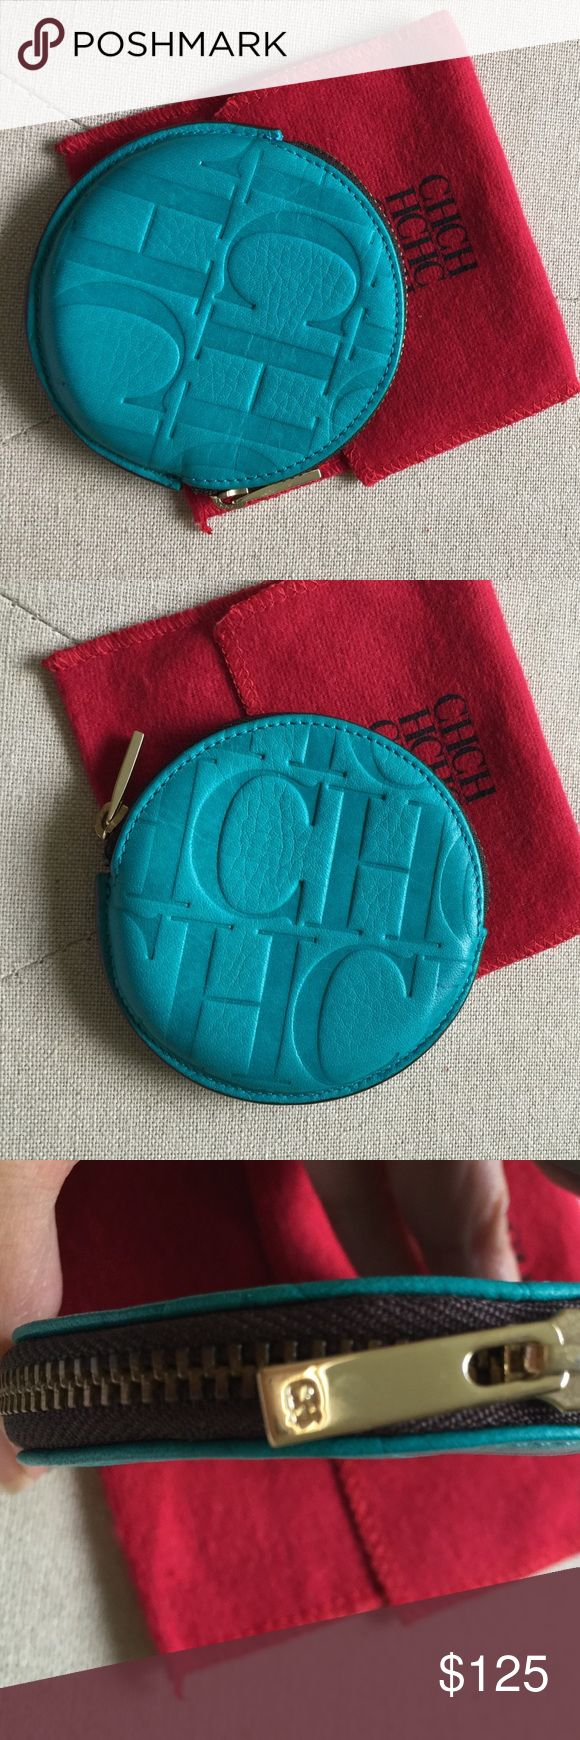 ‼️% Authentic Carolina Herrera Coin Purse‼️ Beautiful brand new Carolina Herrera Turquoise coin purse with tag. Carolina Herrera Bags Wallets